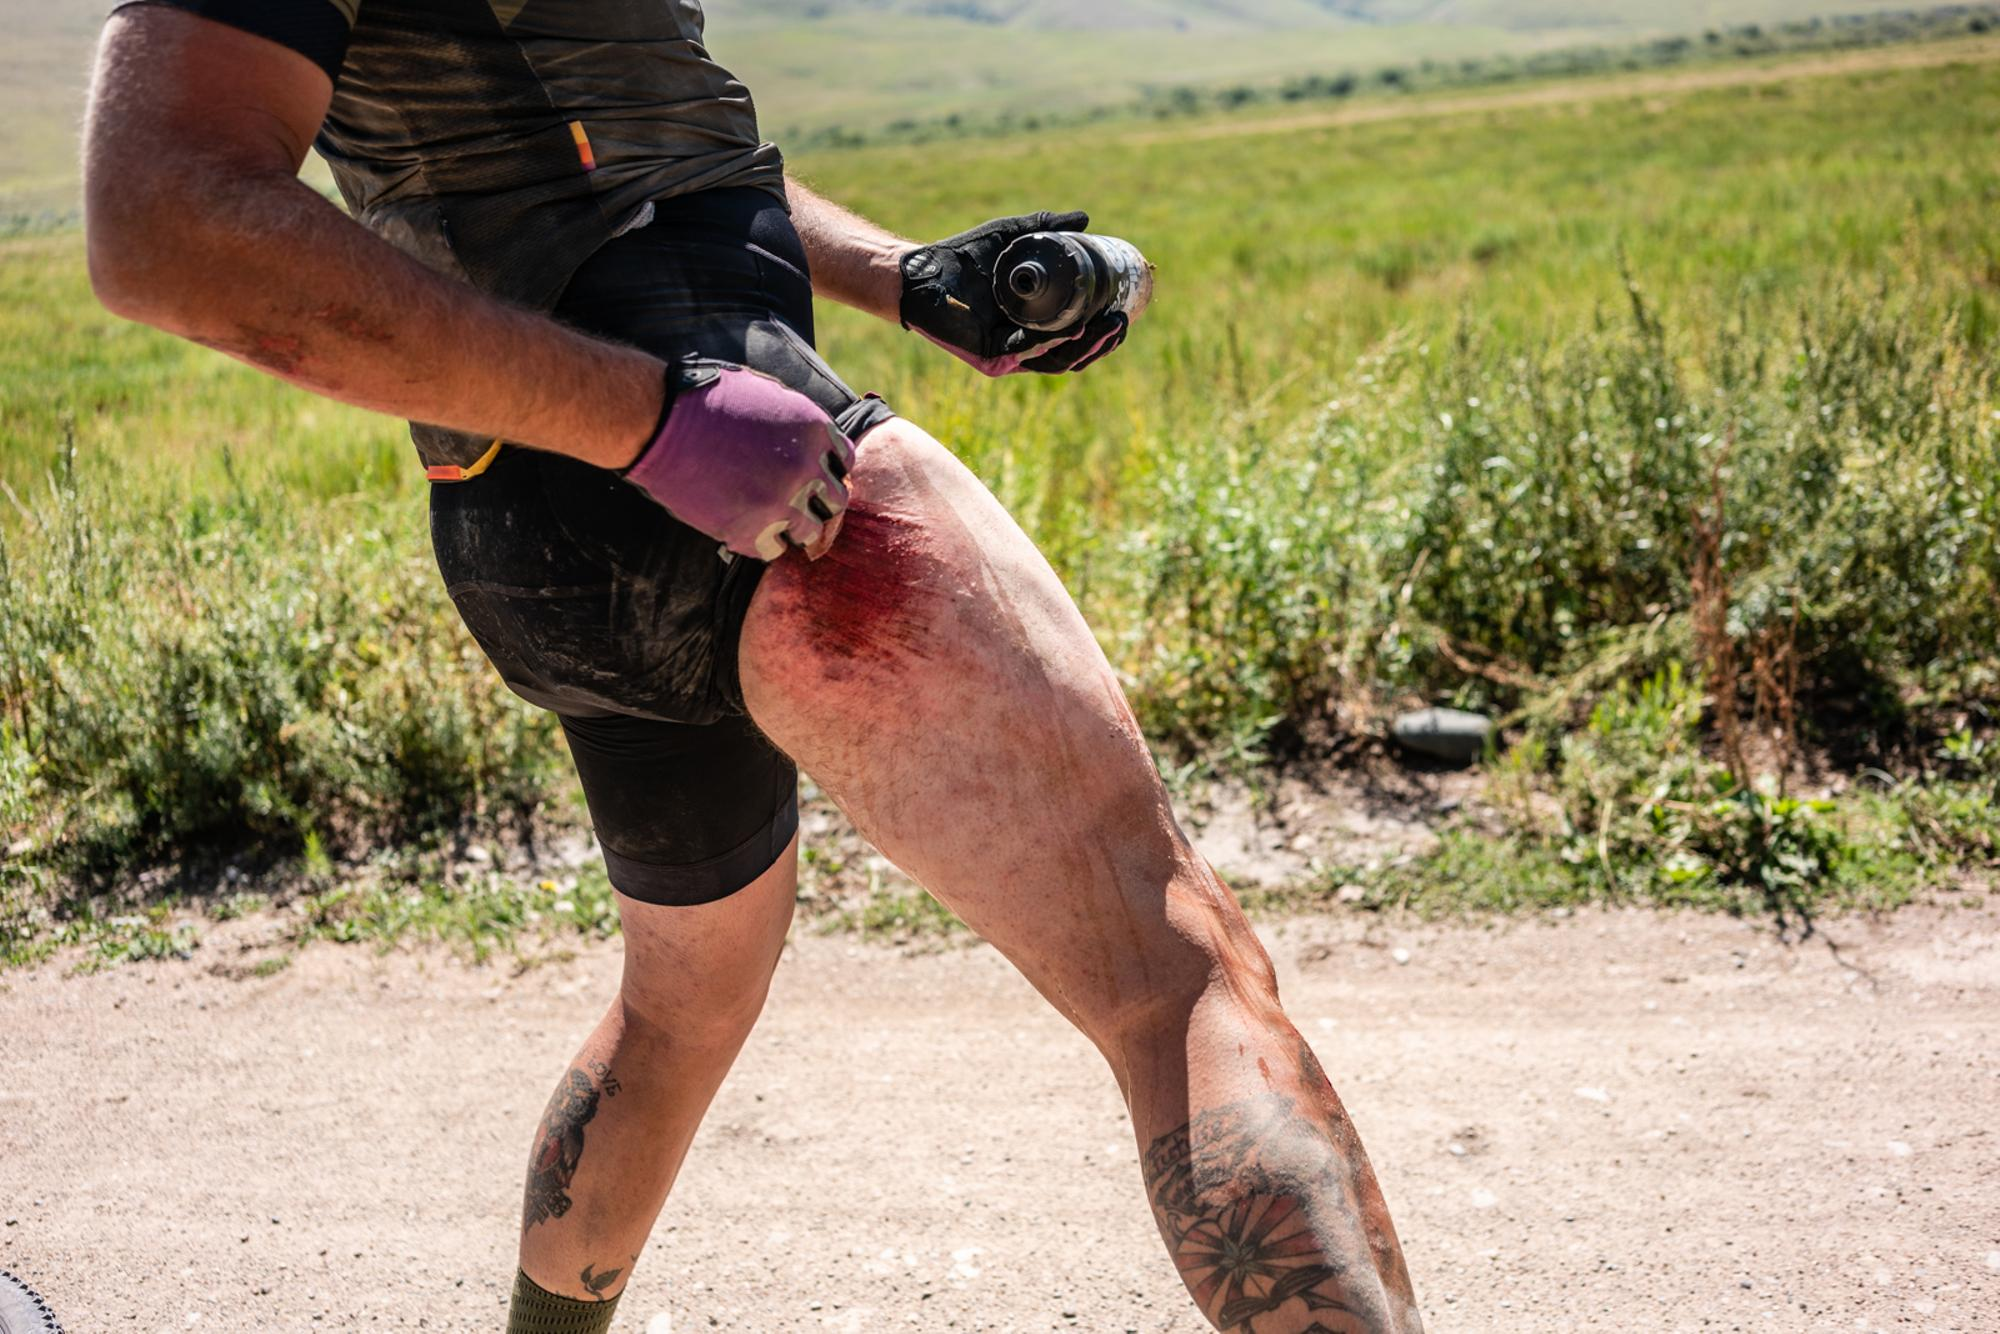 Gravel road rash